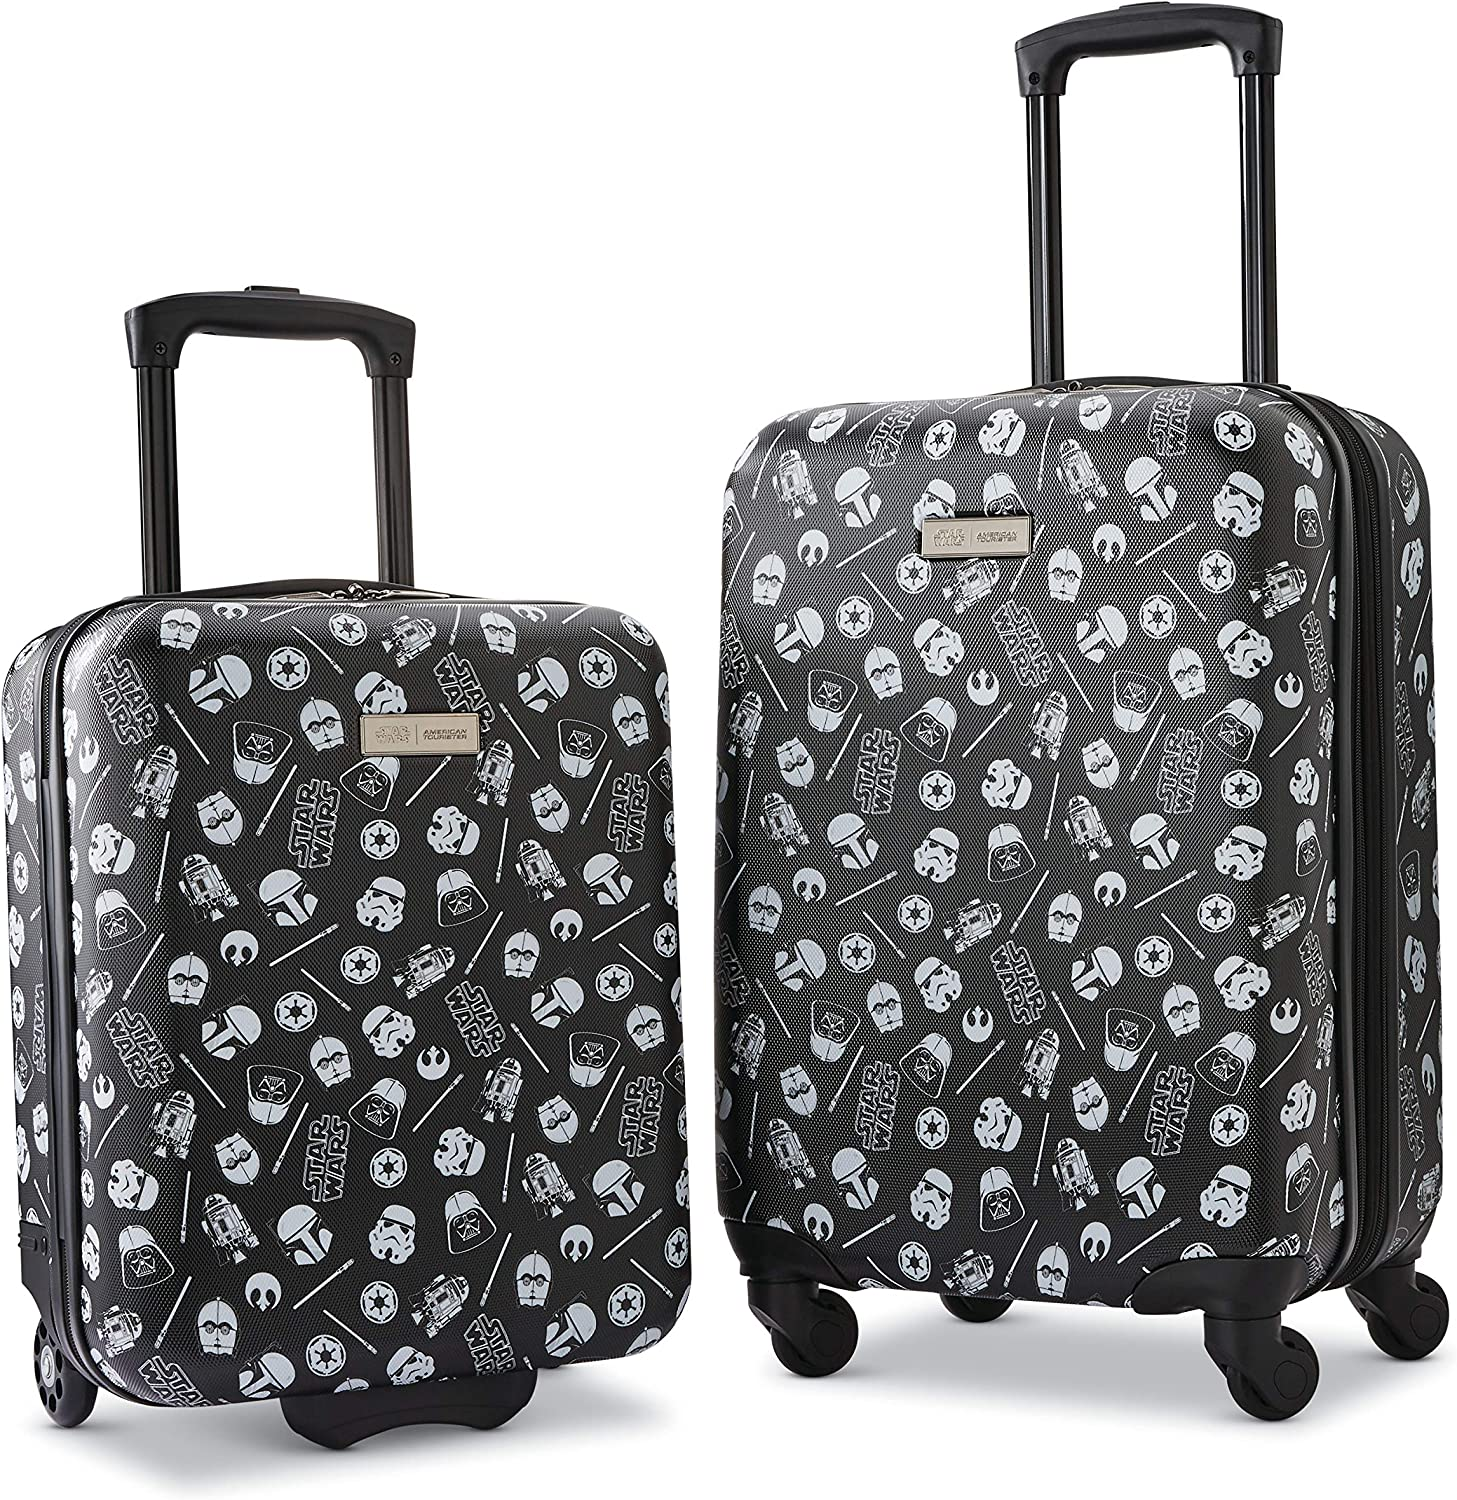 Amazon Com American Tourister Disney Hardside Luggage With Spinner Wheels Star Wars 2 Piece Set 18 21 Kids Luggage